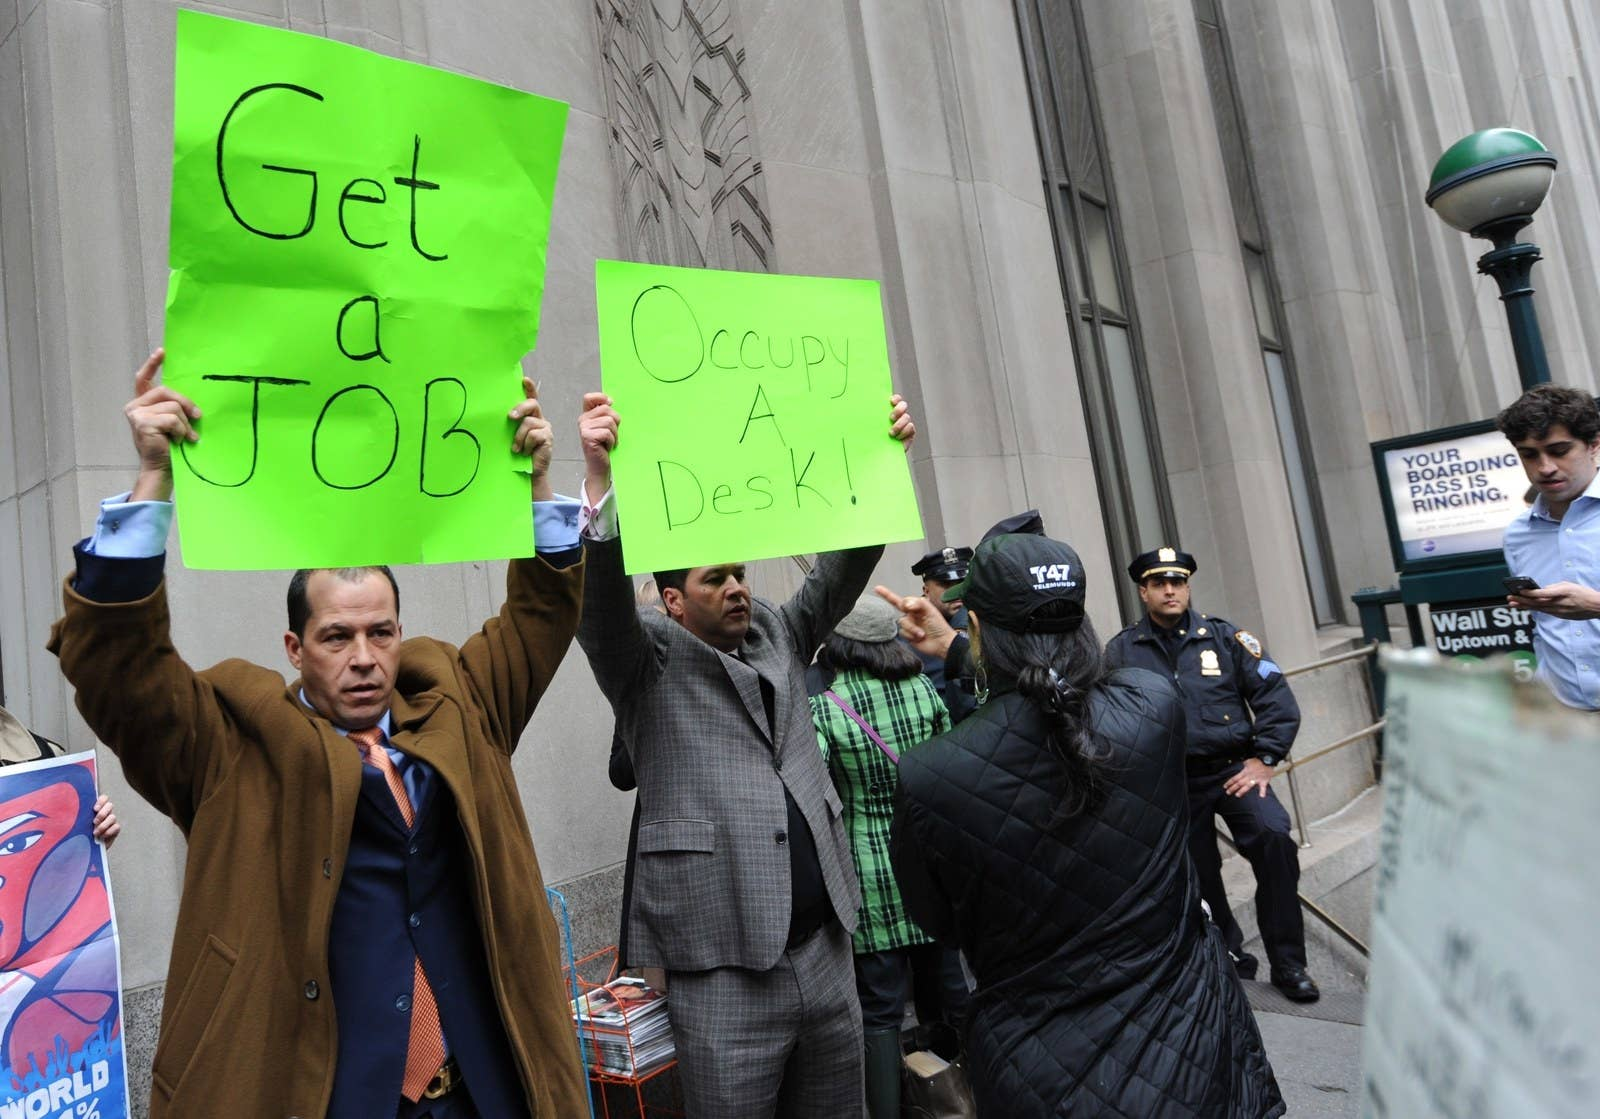 A pair of businessmen demonstrate against the Occupy Wall Street march near the New York Stock Exchange on Nov. 17, 2011.